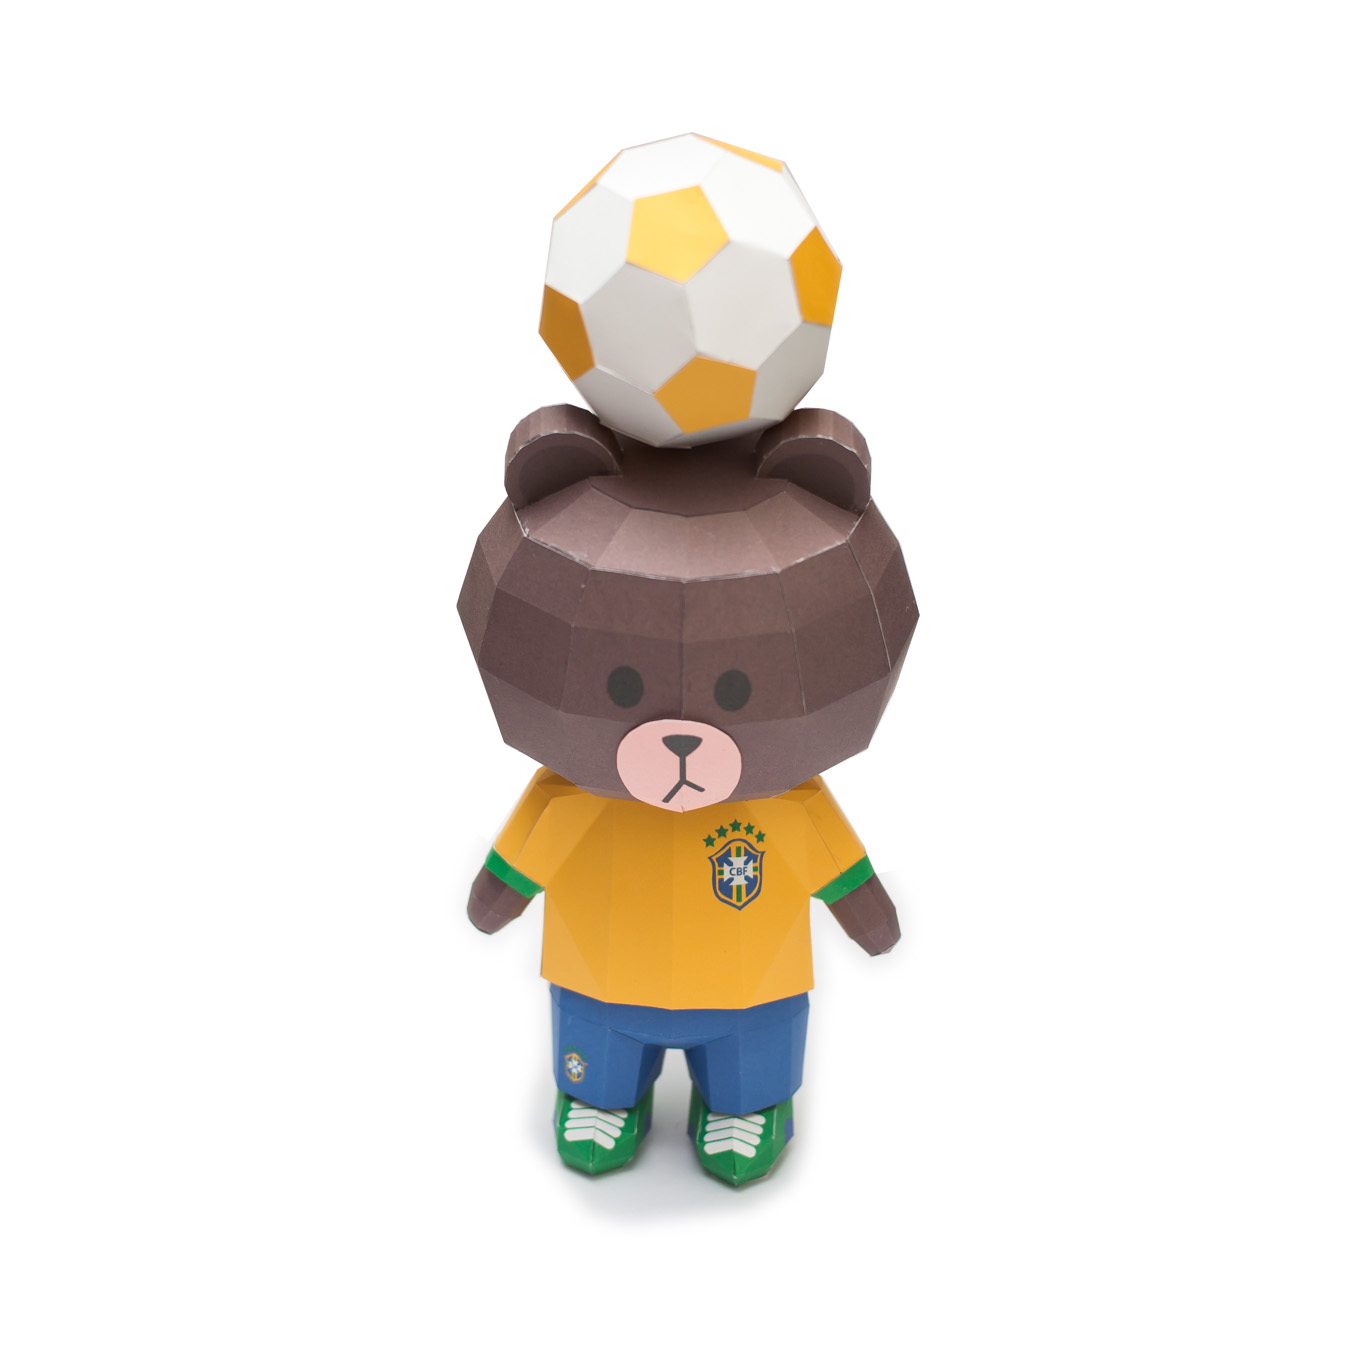 LINE Brown Bear in FIFA World Cup 2014 Brazil Uniform Papercraft Model Finished 004